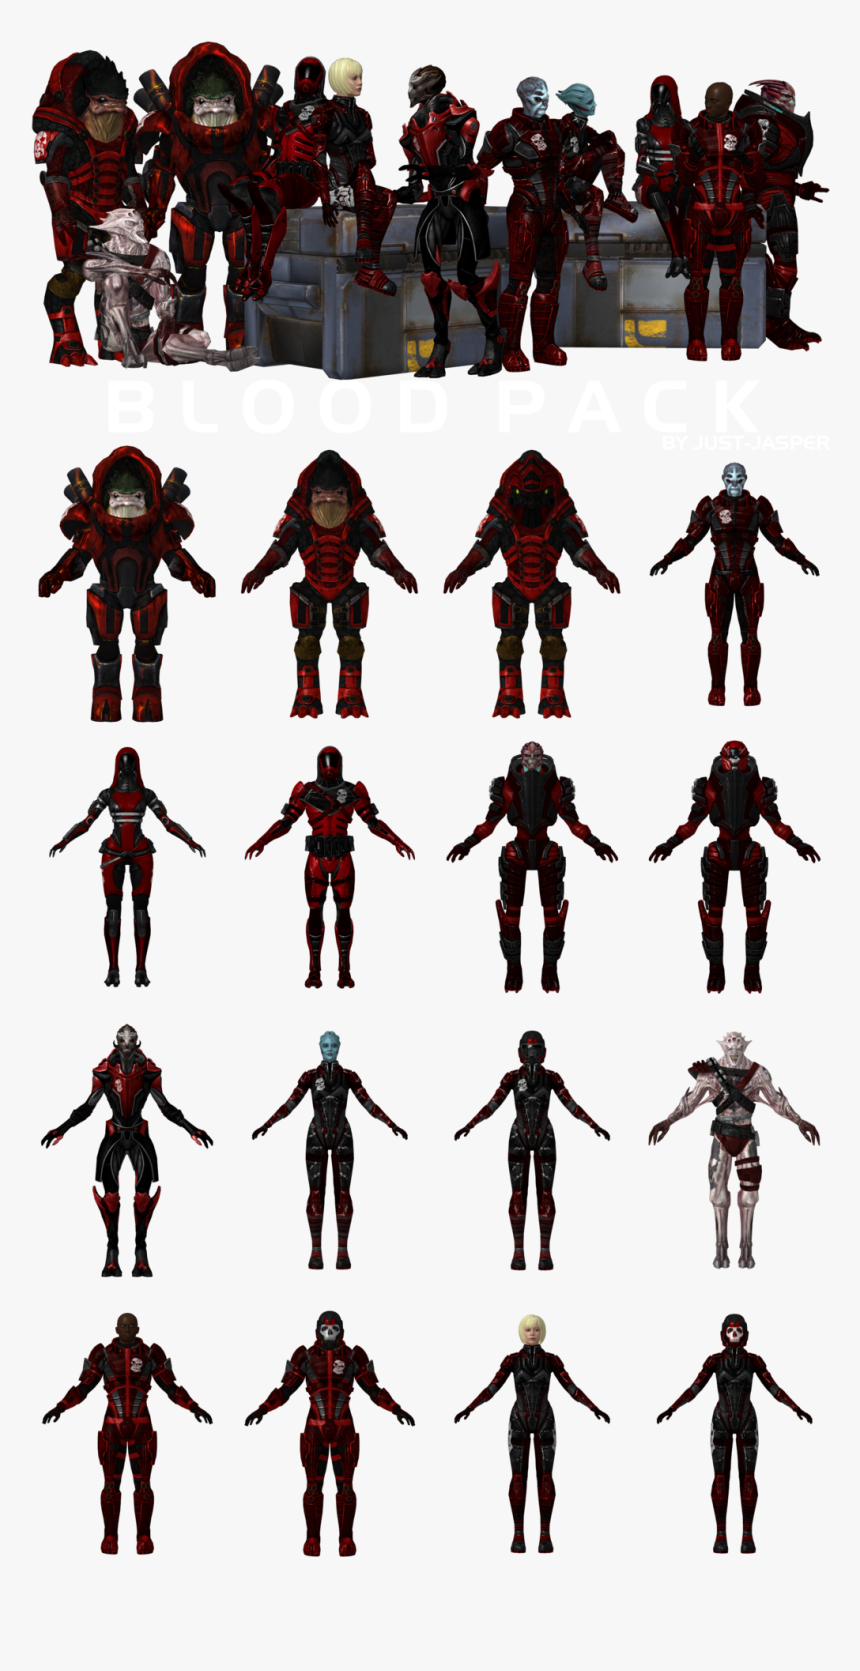 Mass Effect Blood Pack Porps, HD Png Download, Free Download